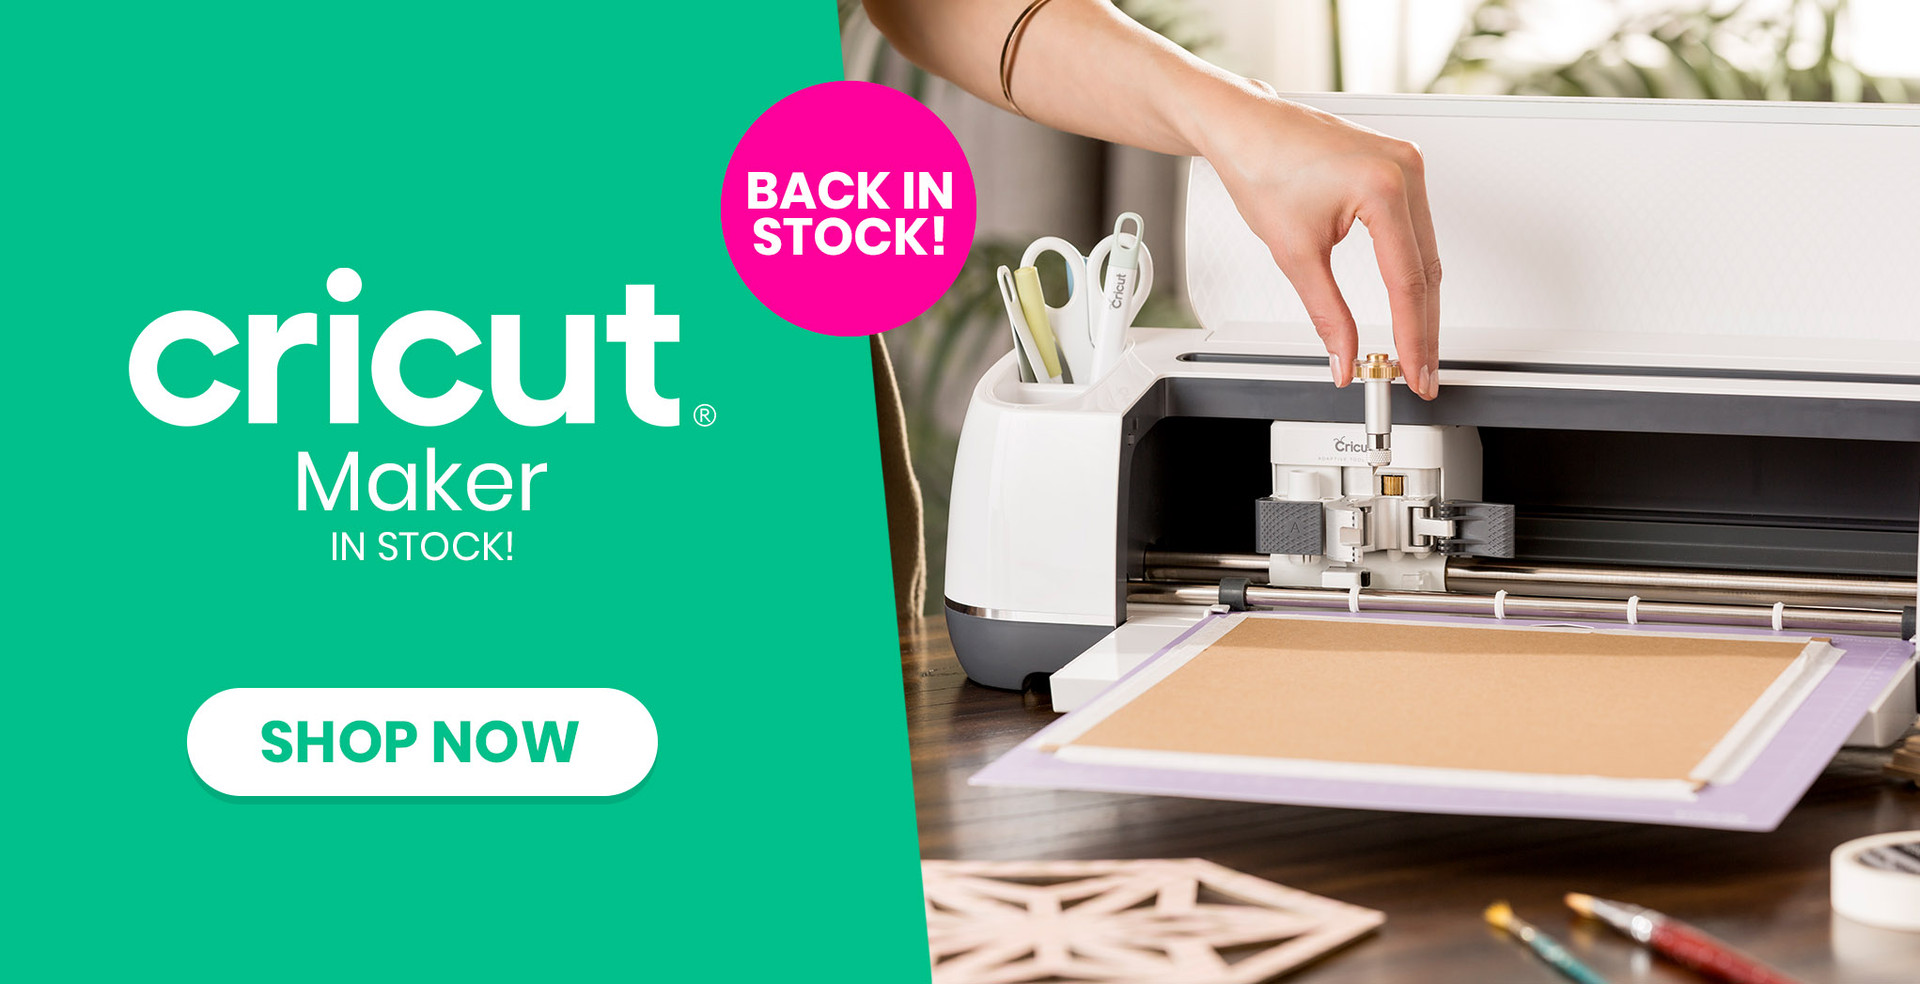 Cricut Maker is back in stock: Shop Now